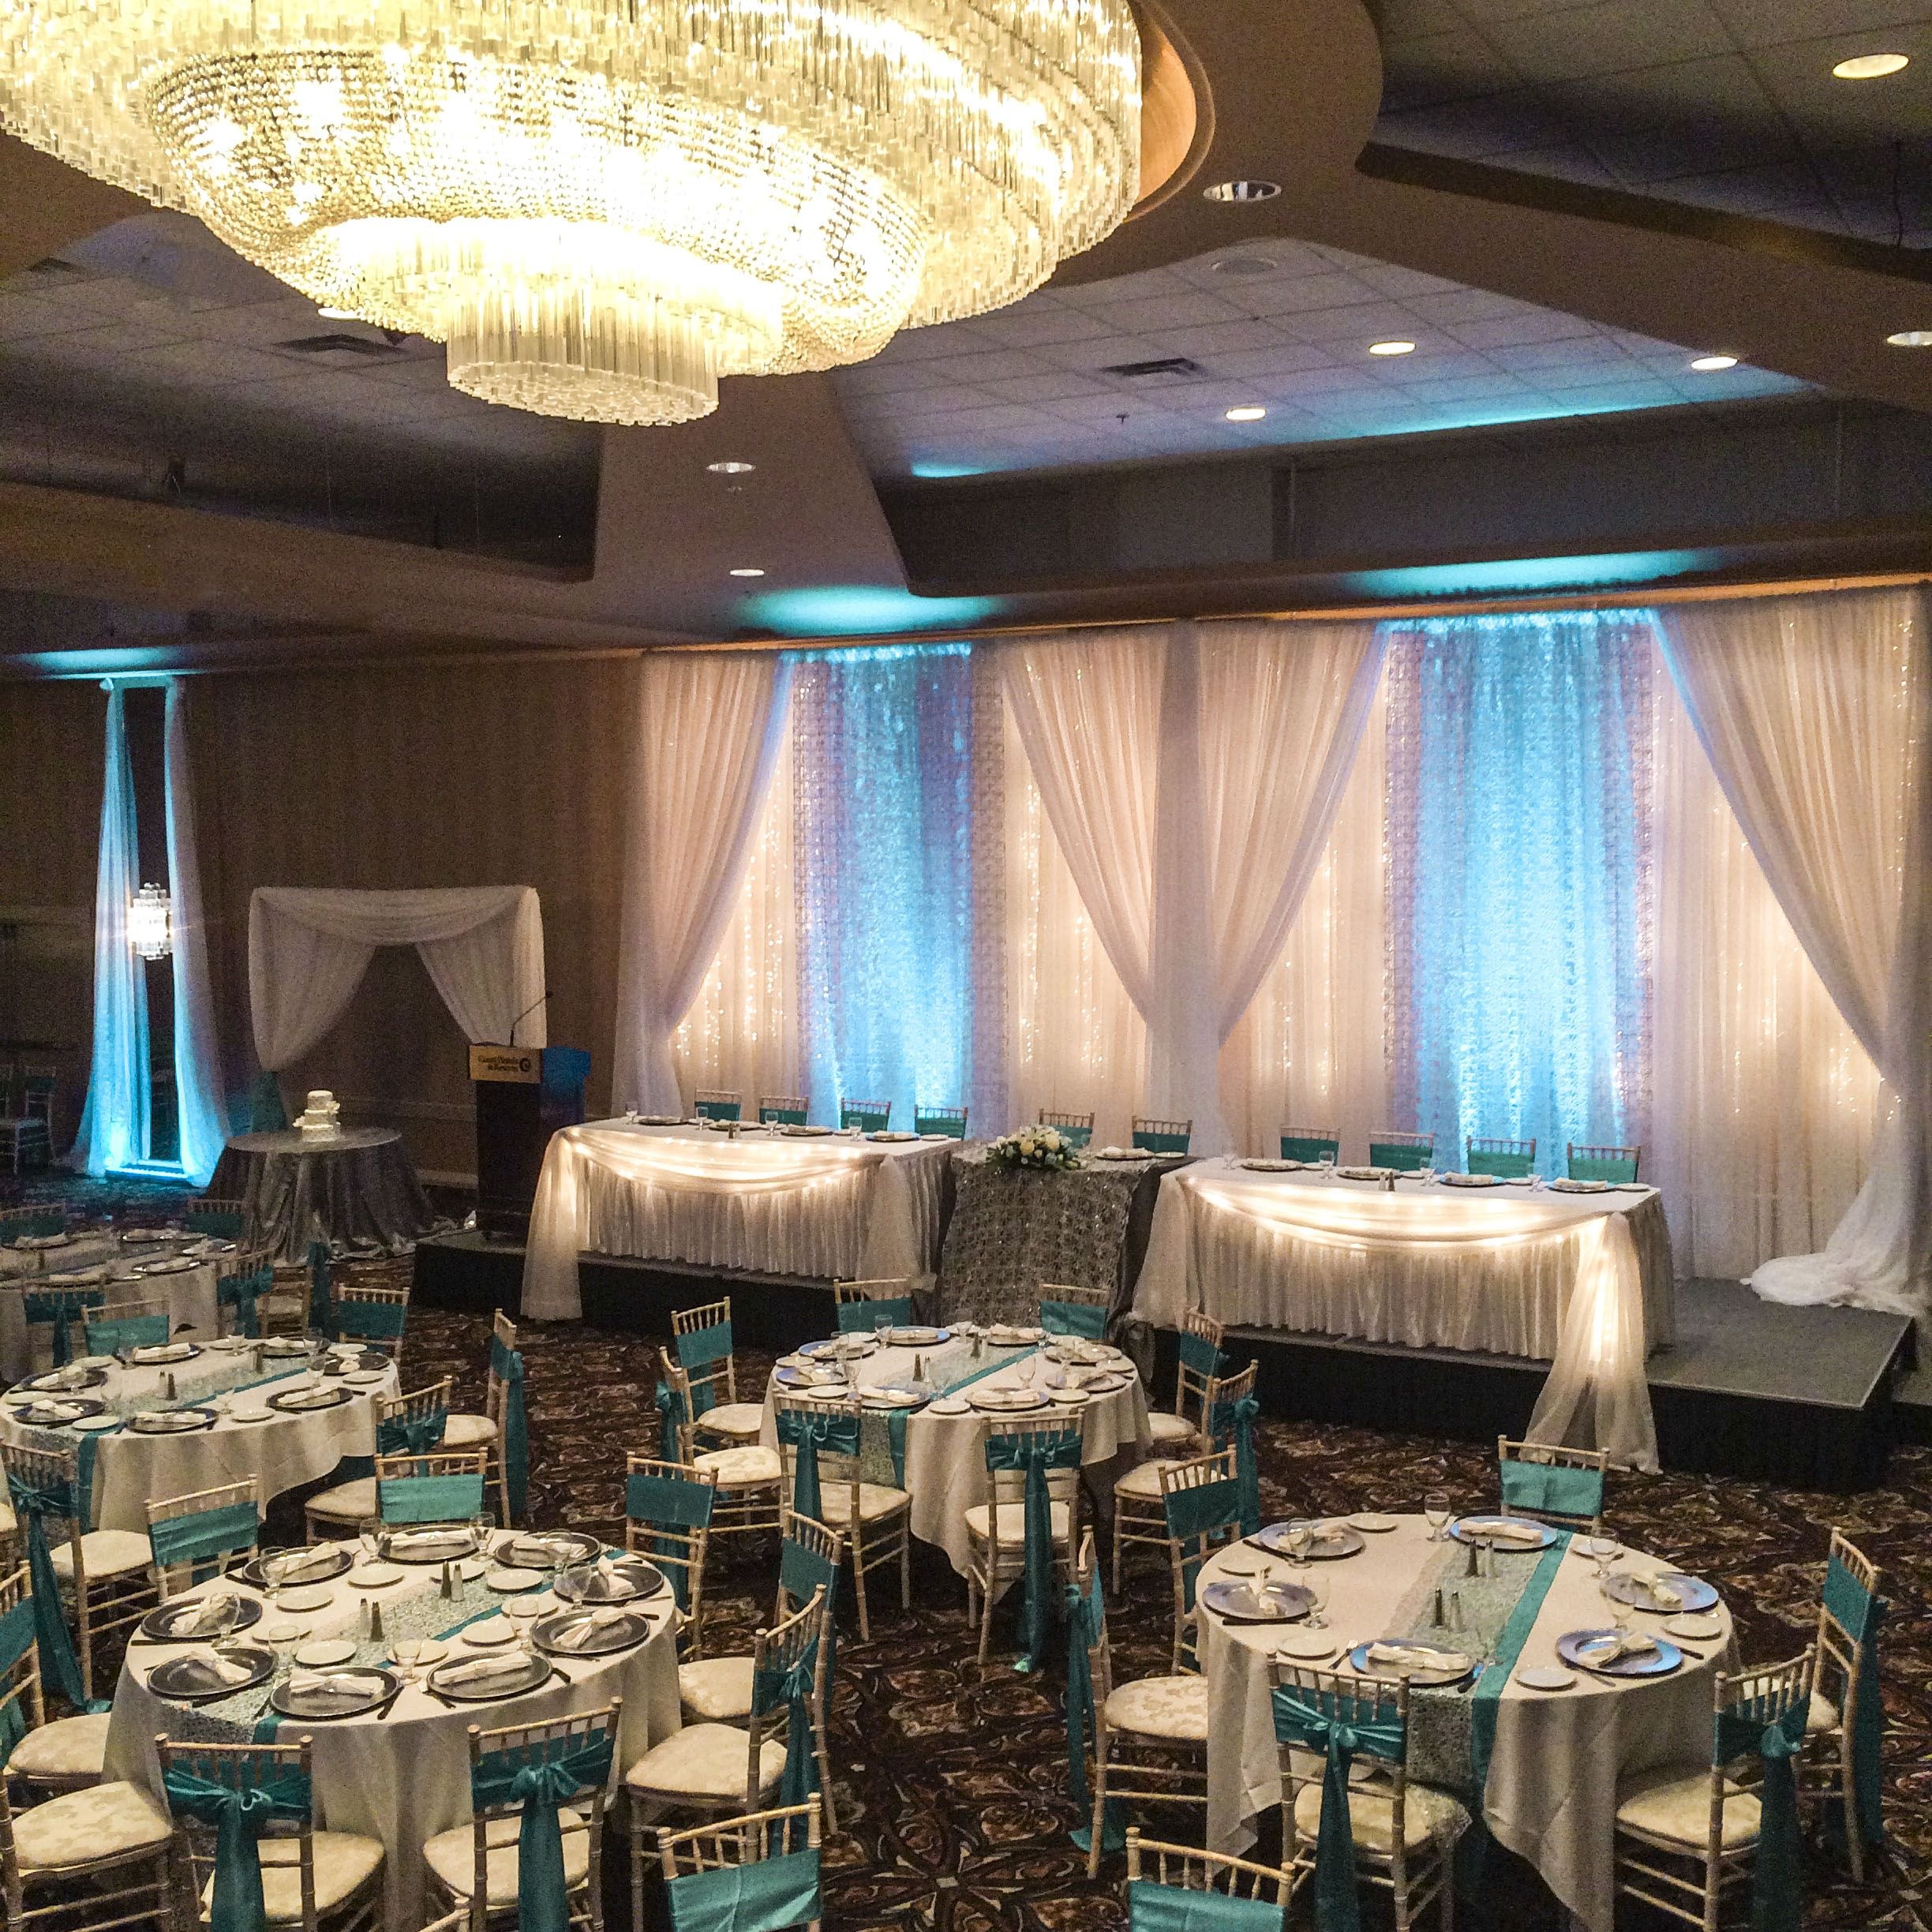 Teal Wedding Ideas For Reception: Spring Teal And Silver Wedding Reception